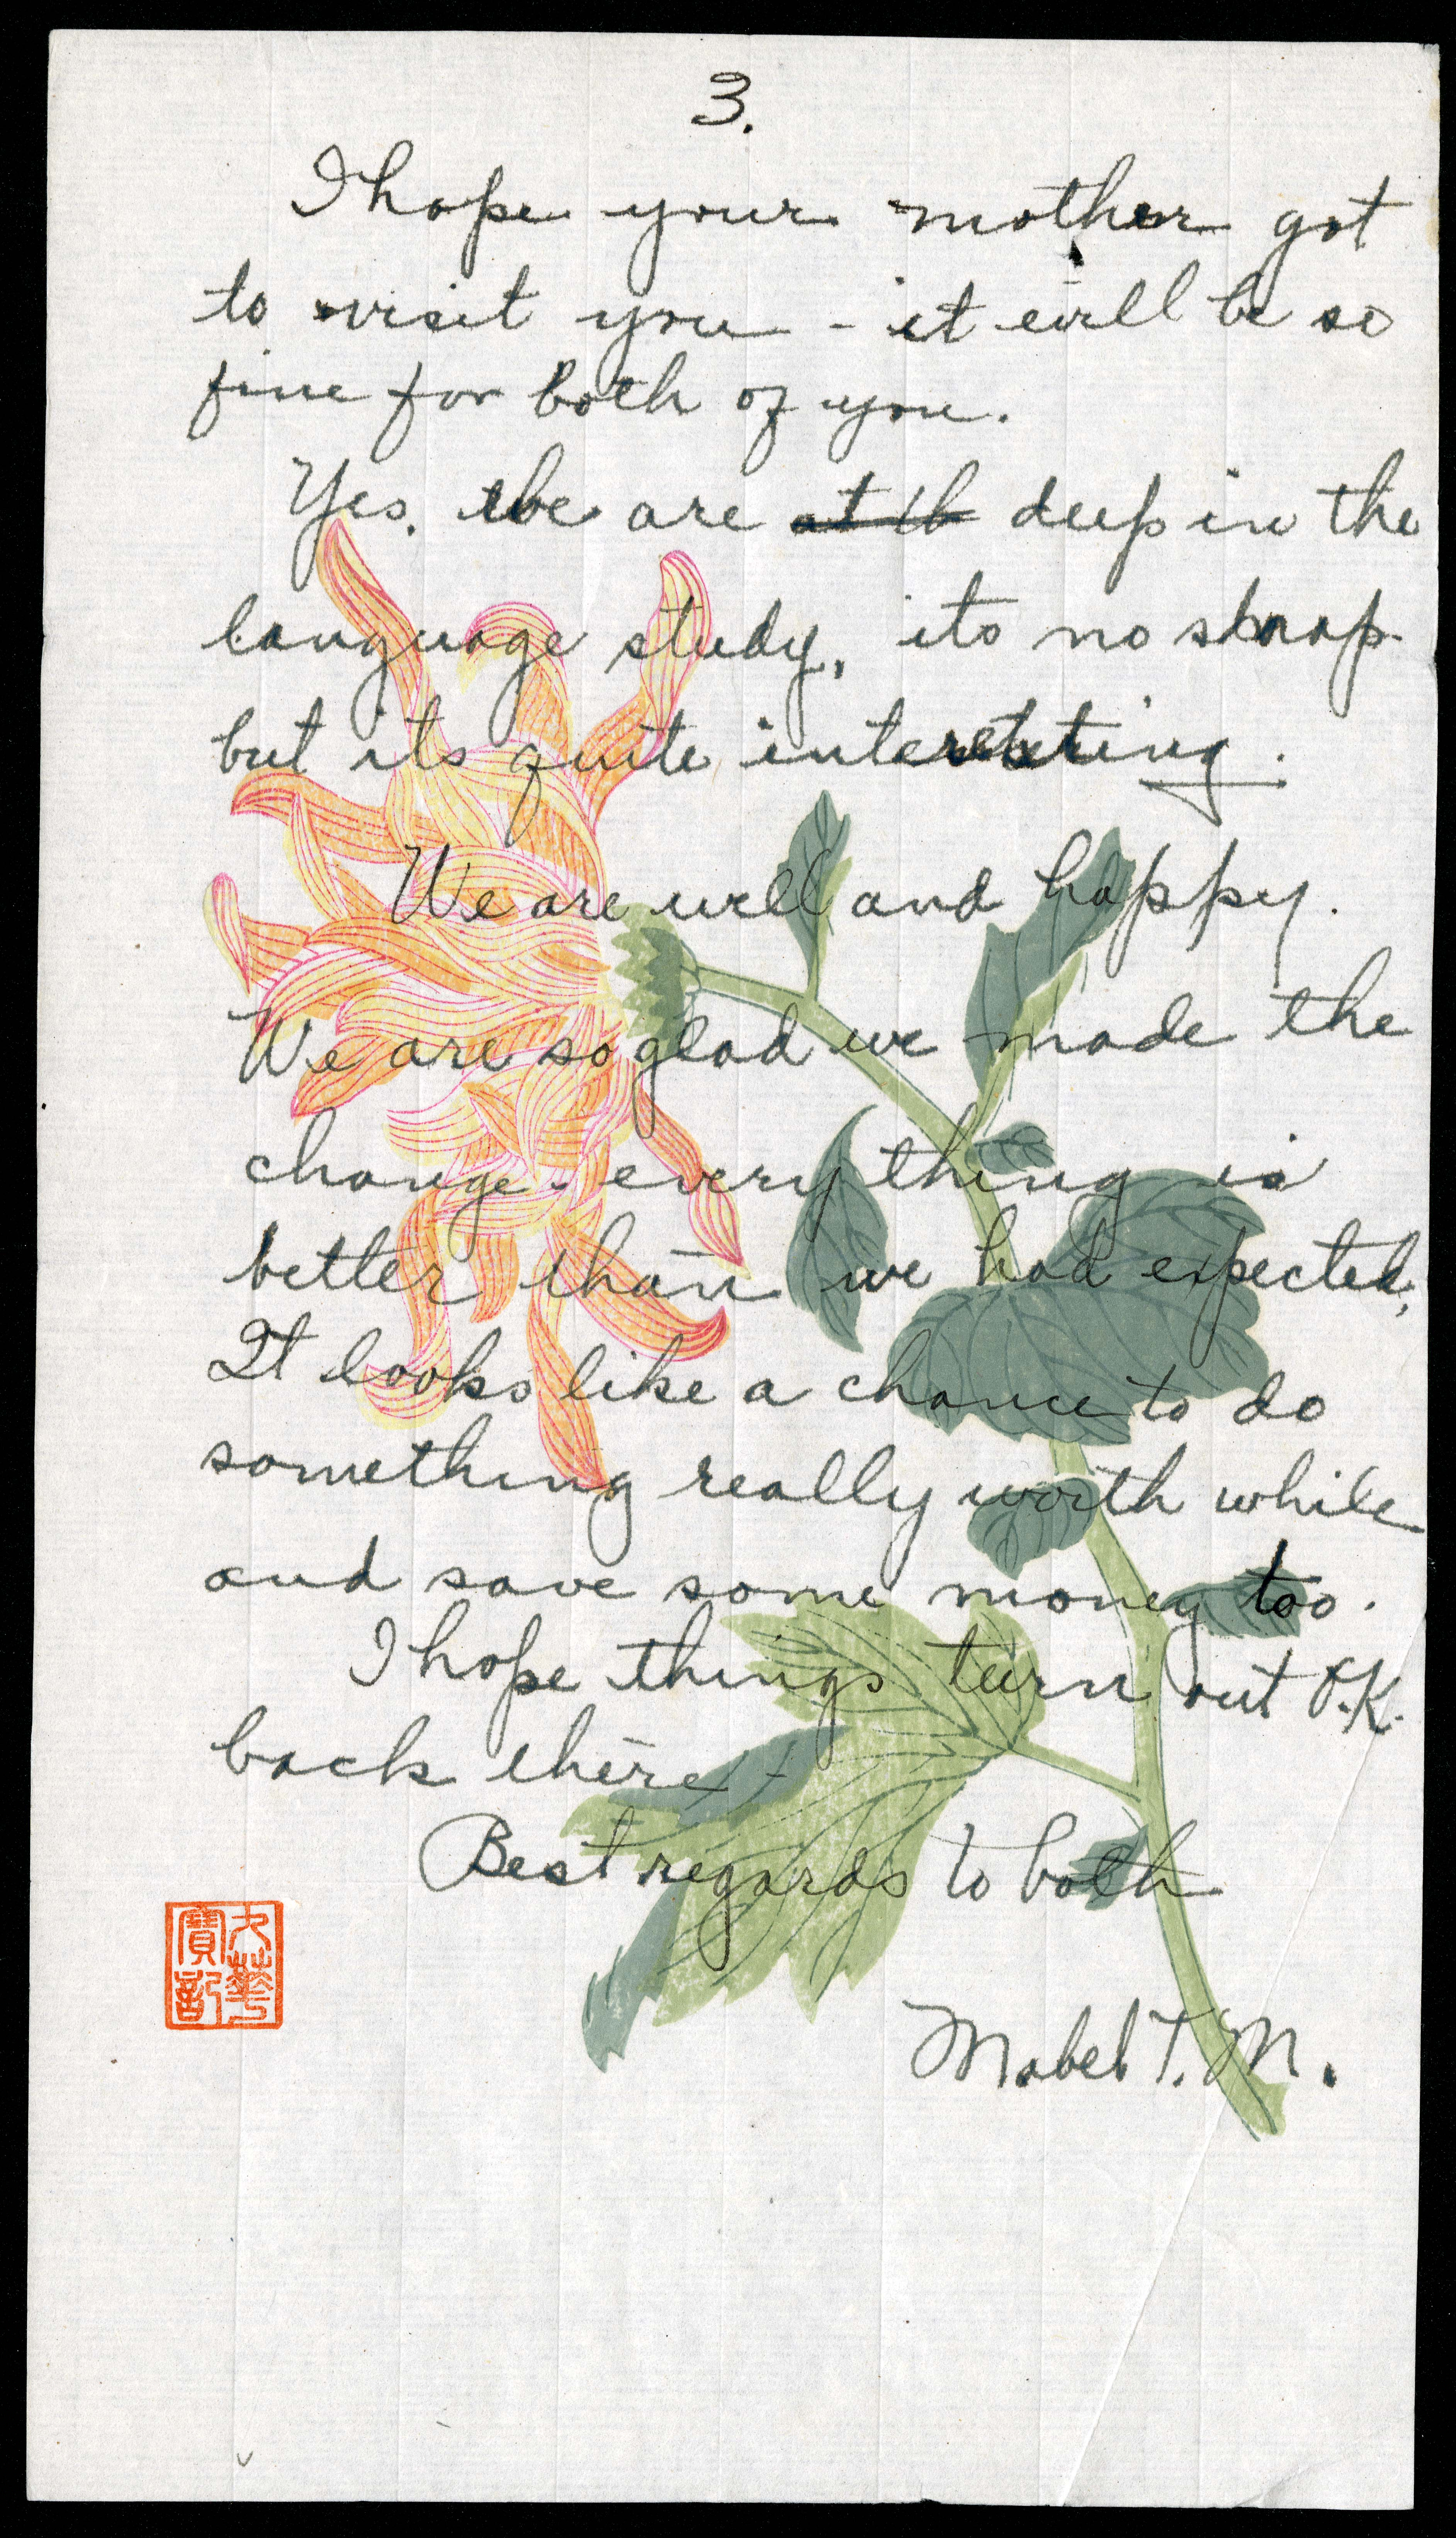 Letter from Mabel Truss Metcalf to Marguerite Henrich Kellogg, October 14, 1923, page 3.